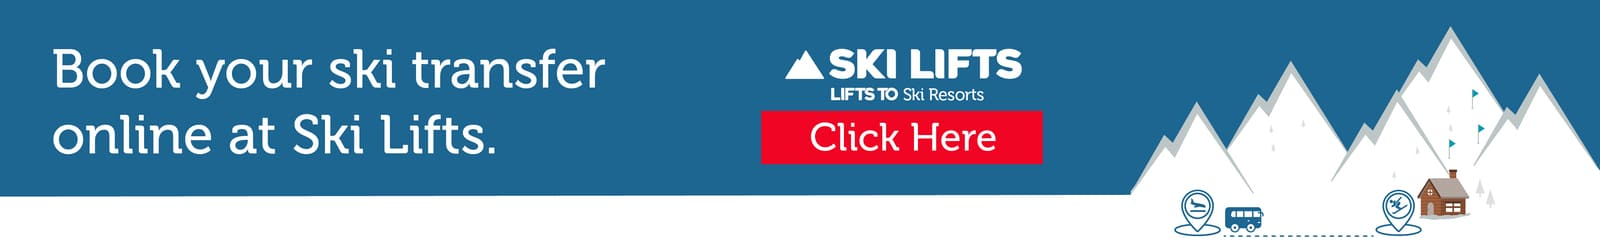 Book your ski transfer at Ski-Lifts